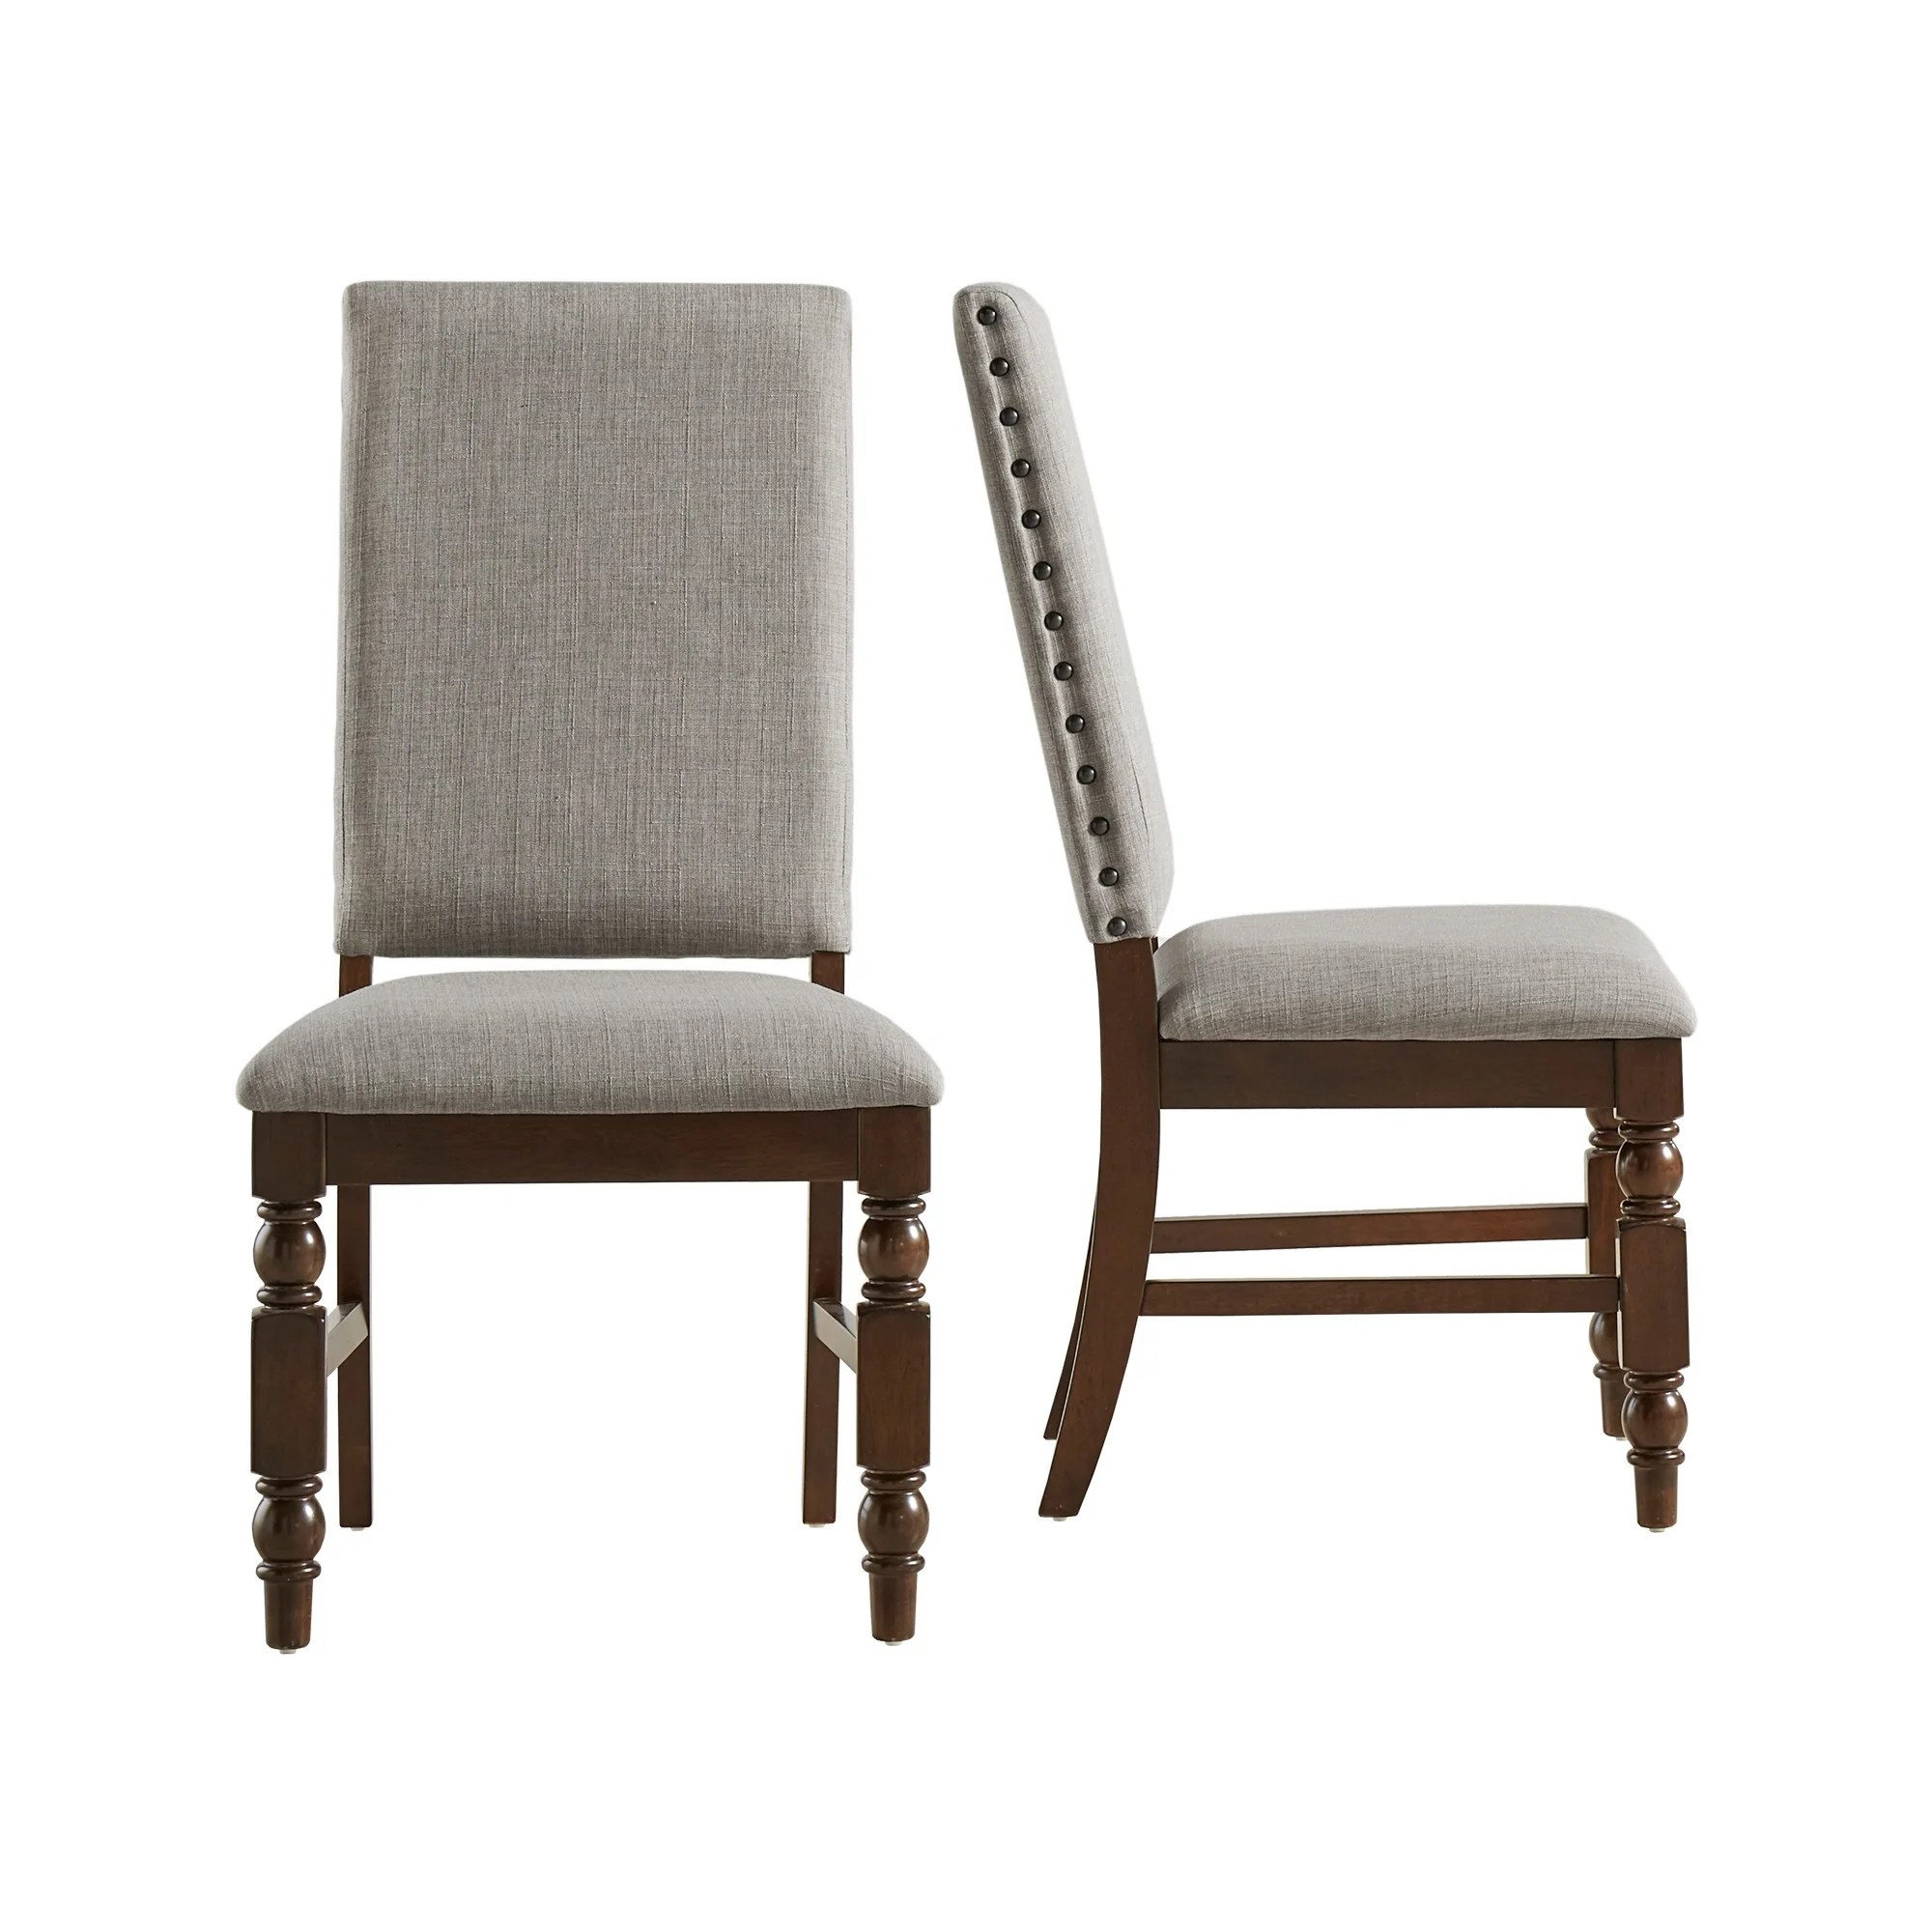 nailhead upholstered dining chair stretch sofa covers flatiron chairs set of 2 by